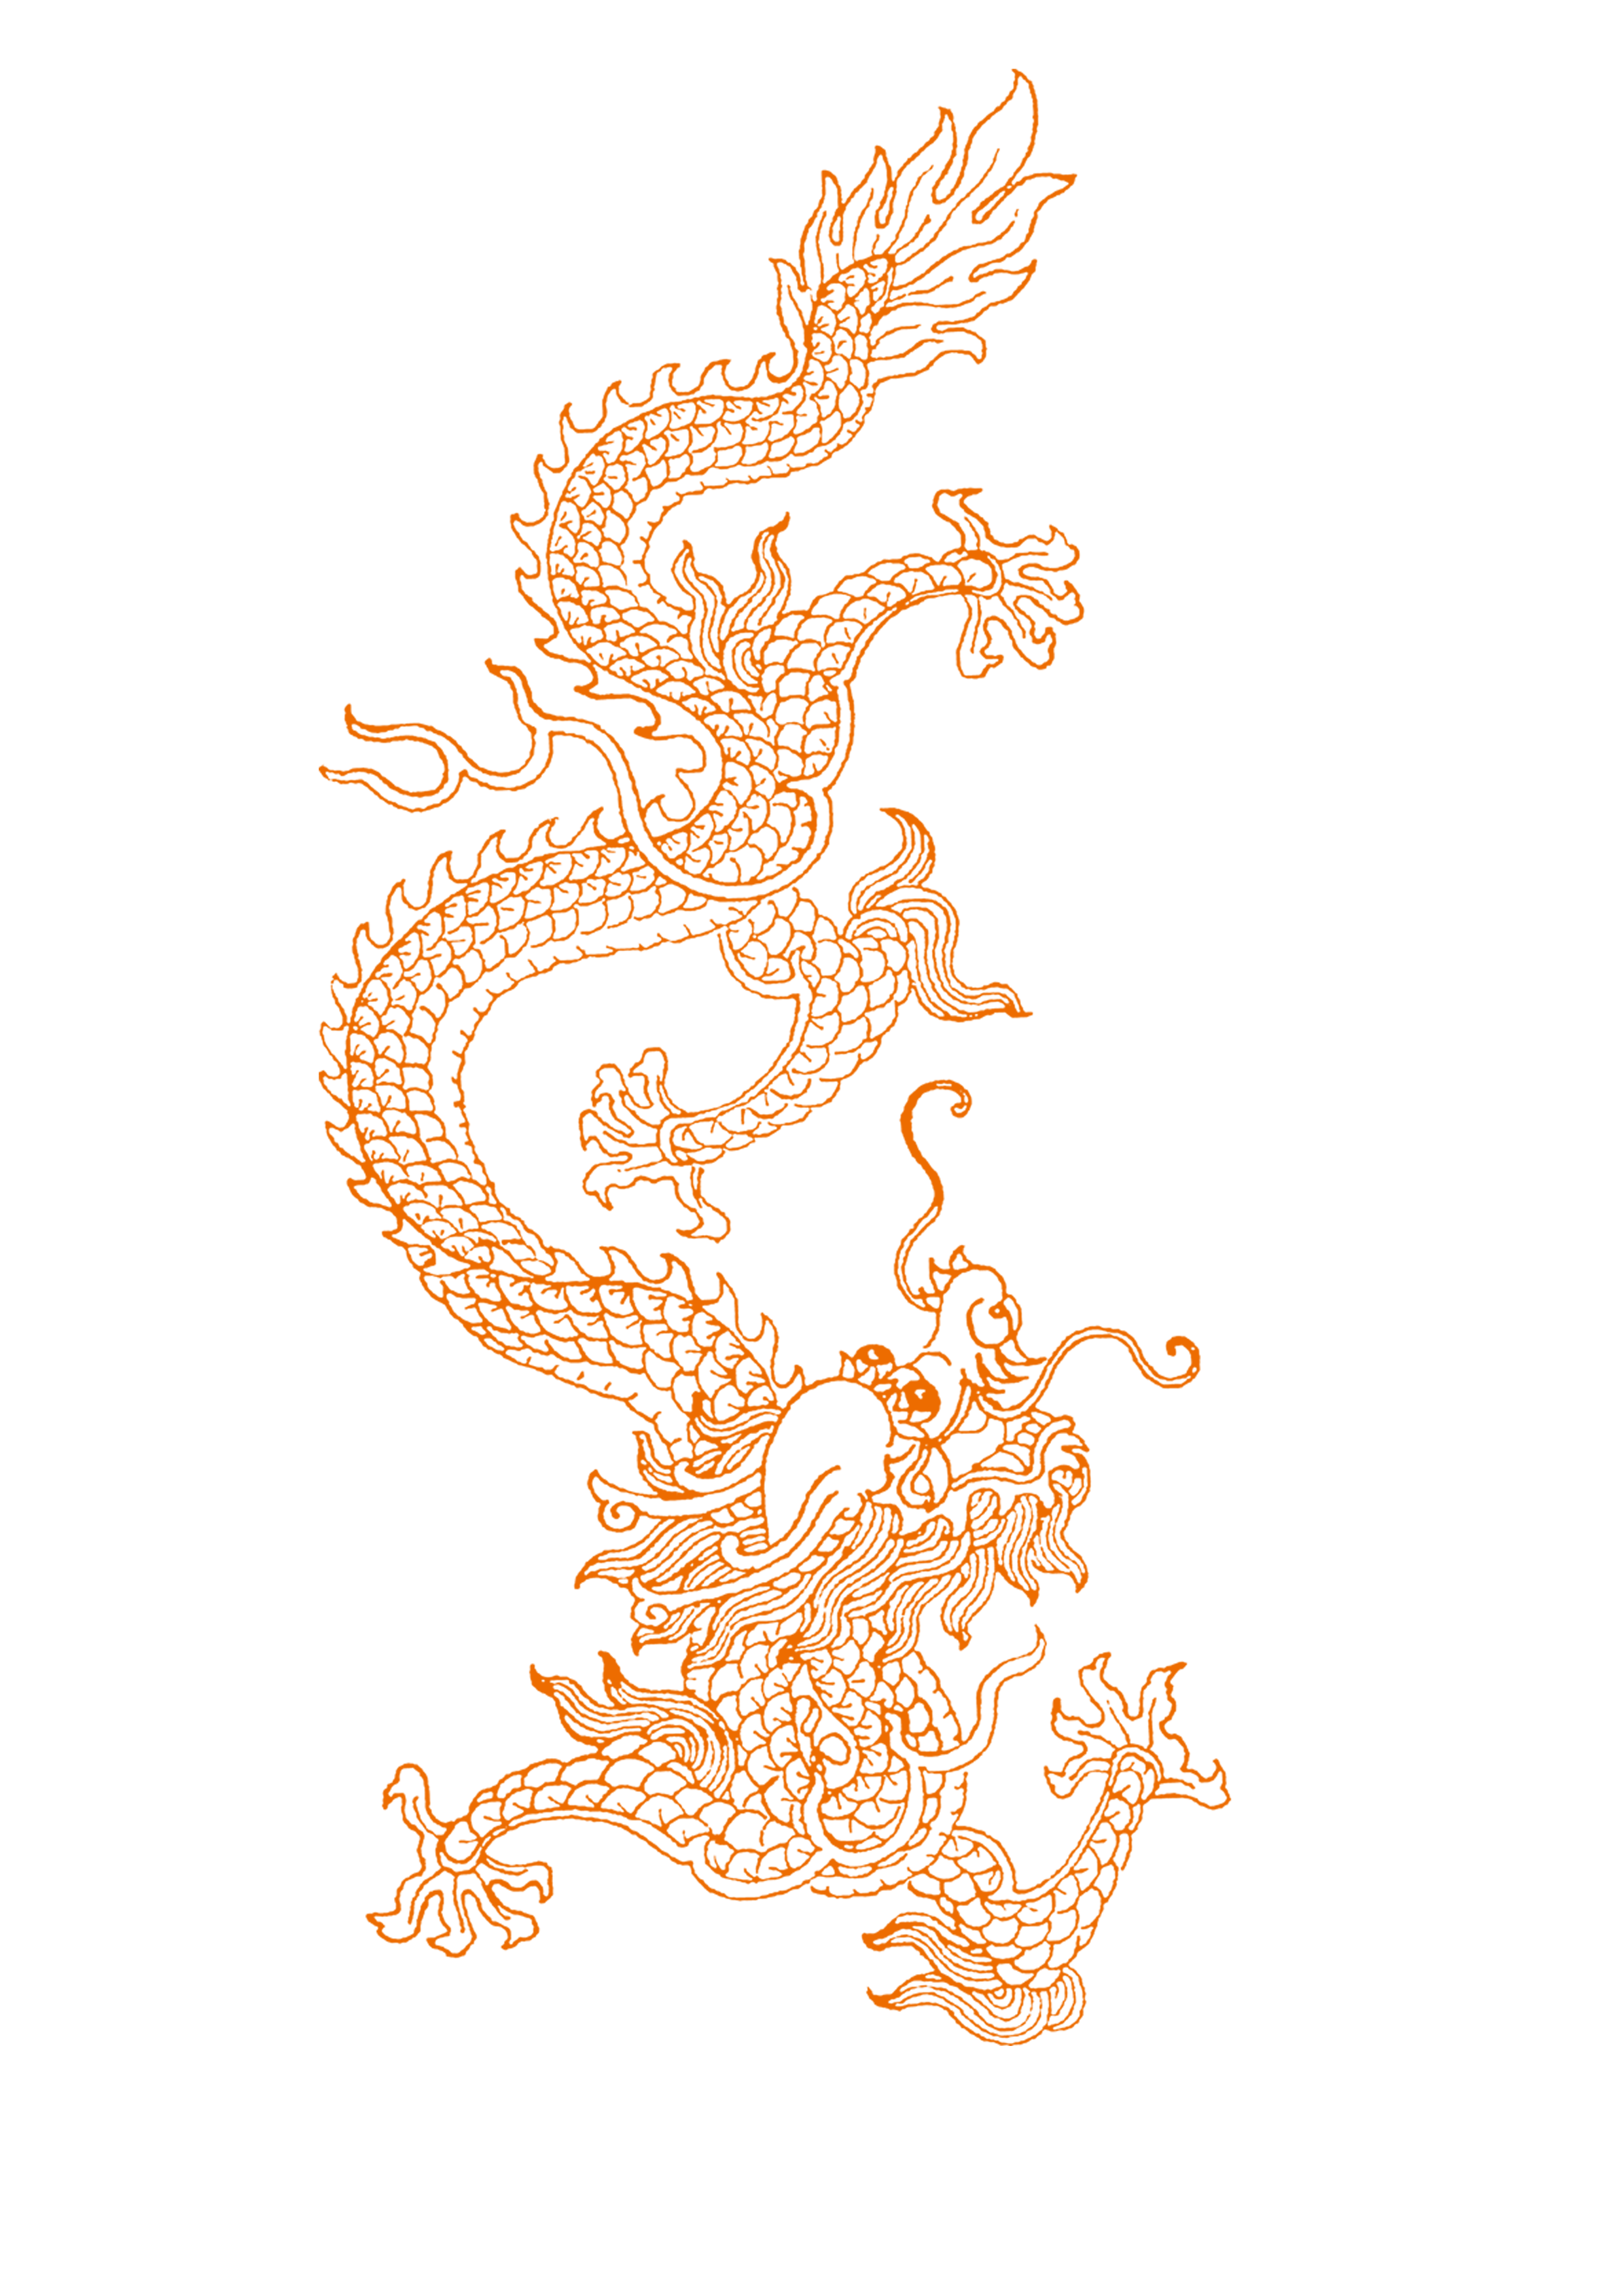 China transparent full body. Chinese dragon long lines